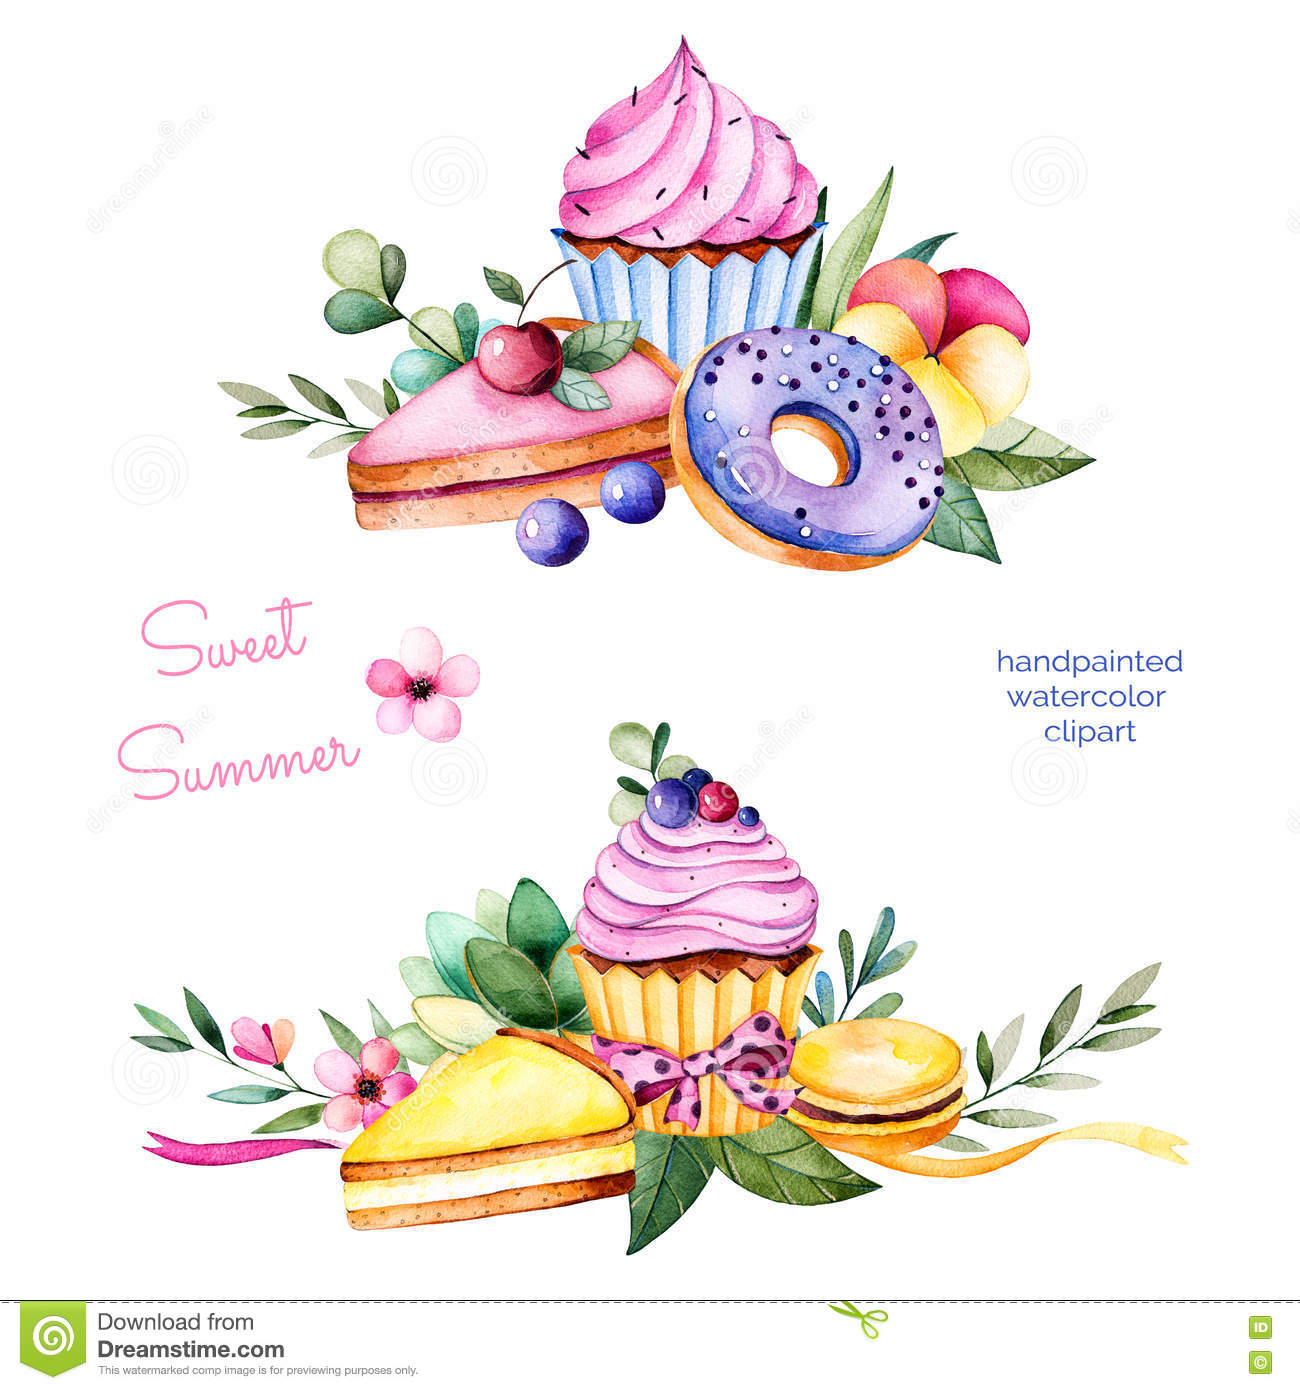 Sweet summer collection with donuts,leaves,succulent plant,branches,pansy flower,macaroons,lemon and cherry cheesecakes,cupcakes.